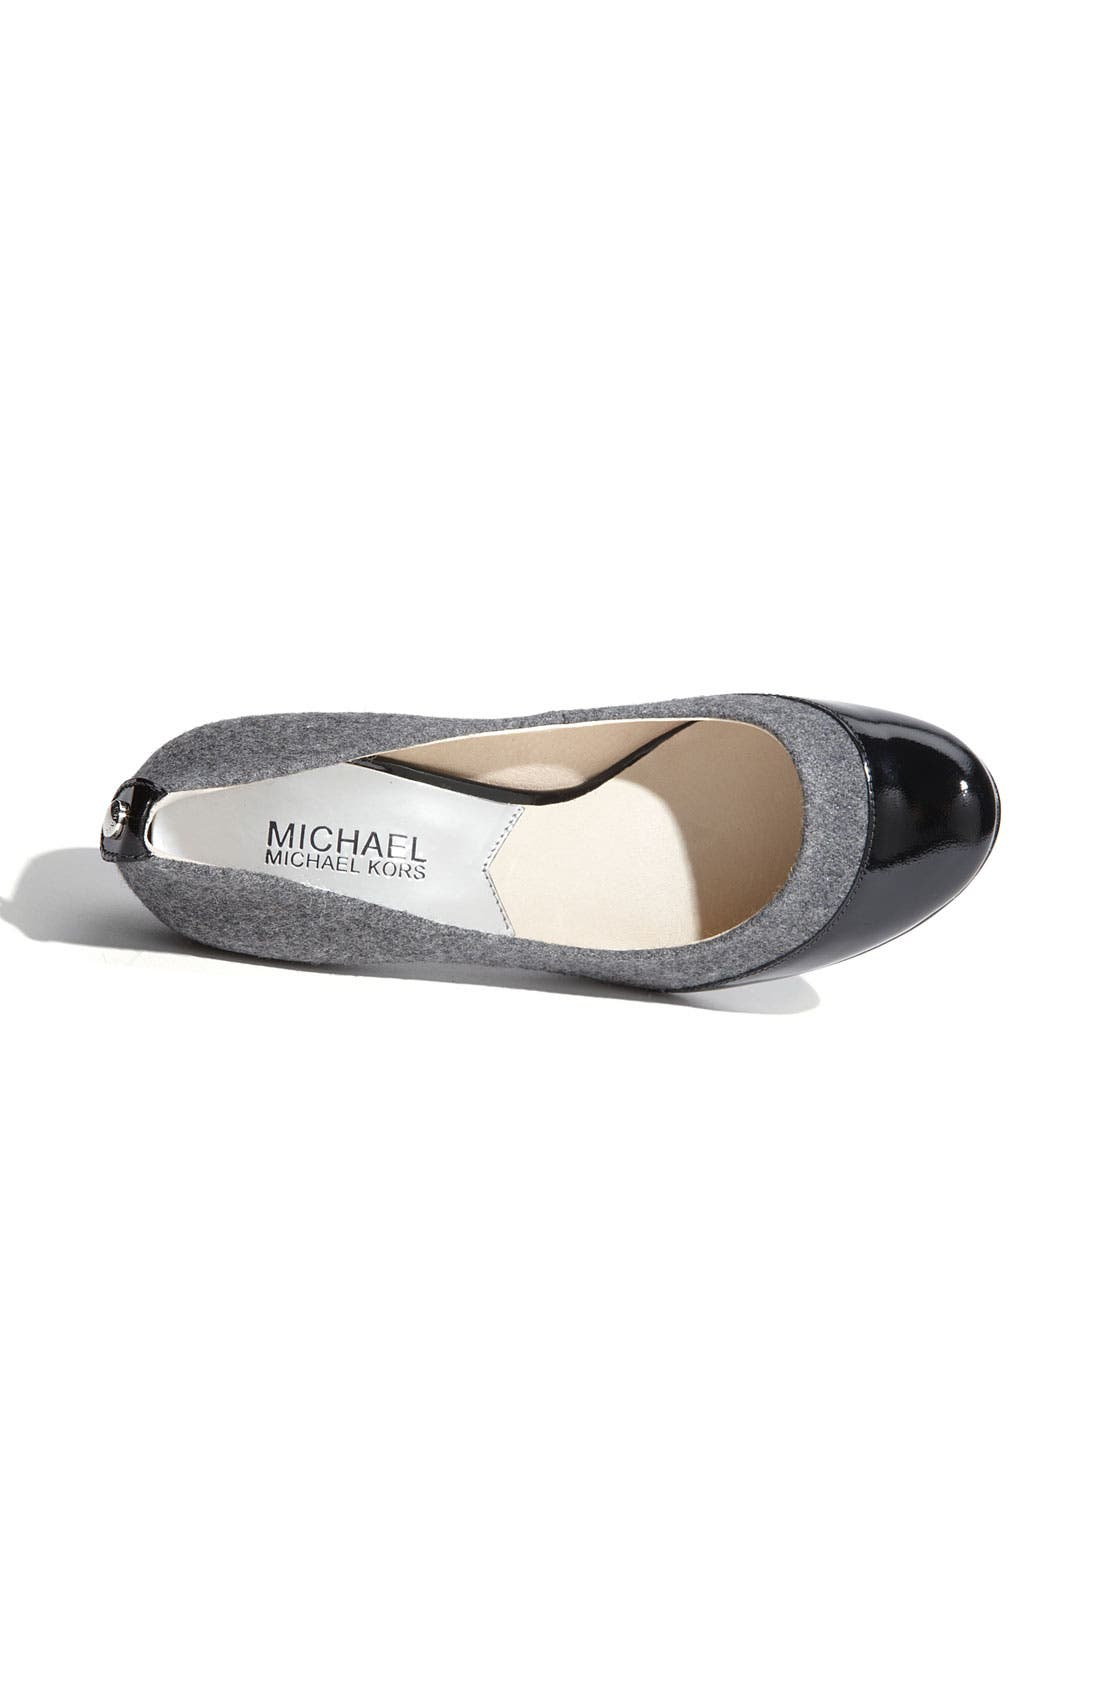 Alternate Image 3  - MICHAEL Michael Kors 'Pressley' Pump